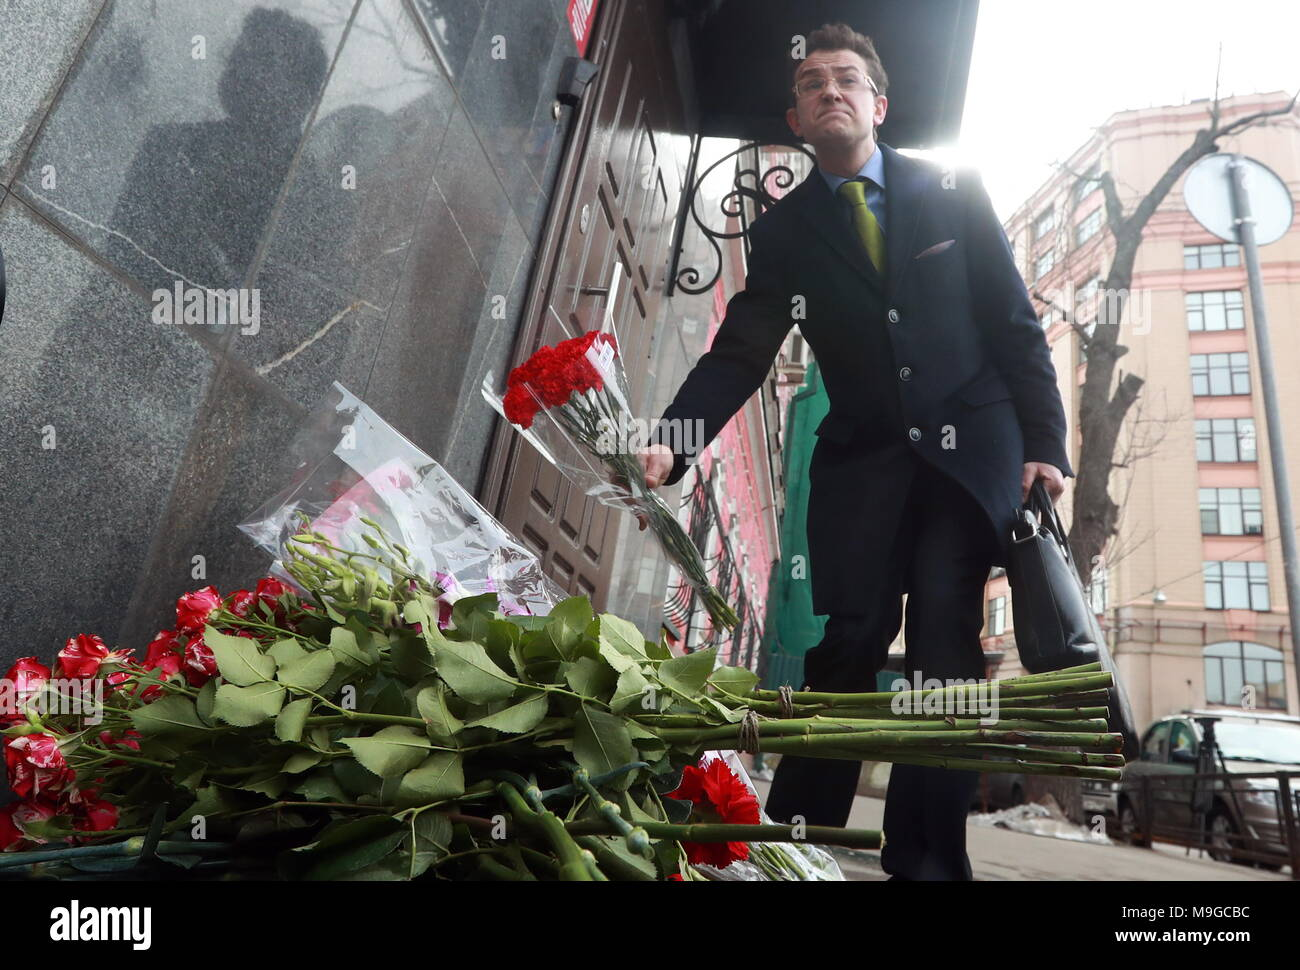 Moscow, Russia. 26th Mar, 2018. MOSCOW, RUSSIA - MARCH 26, 2018: Flowers outside the Kemerovo Region representative office in Bolshaya Tatarskaya Street in memory of the people killed in a fire at the Zimnyaya Vishnya shopping centre in Kemerovo on March 25, 2018. Sergei Fadeichev/TASS Credit: ITAR-TASS News Agency/Alamy Live News Stock Photo